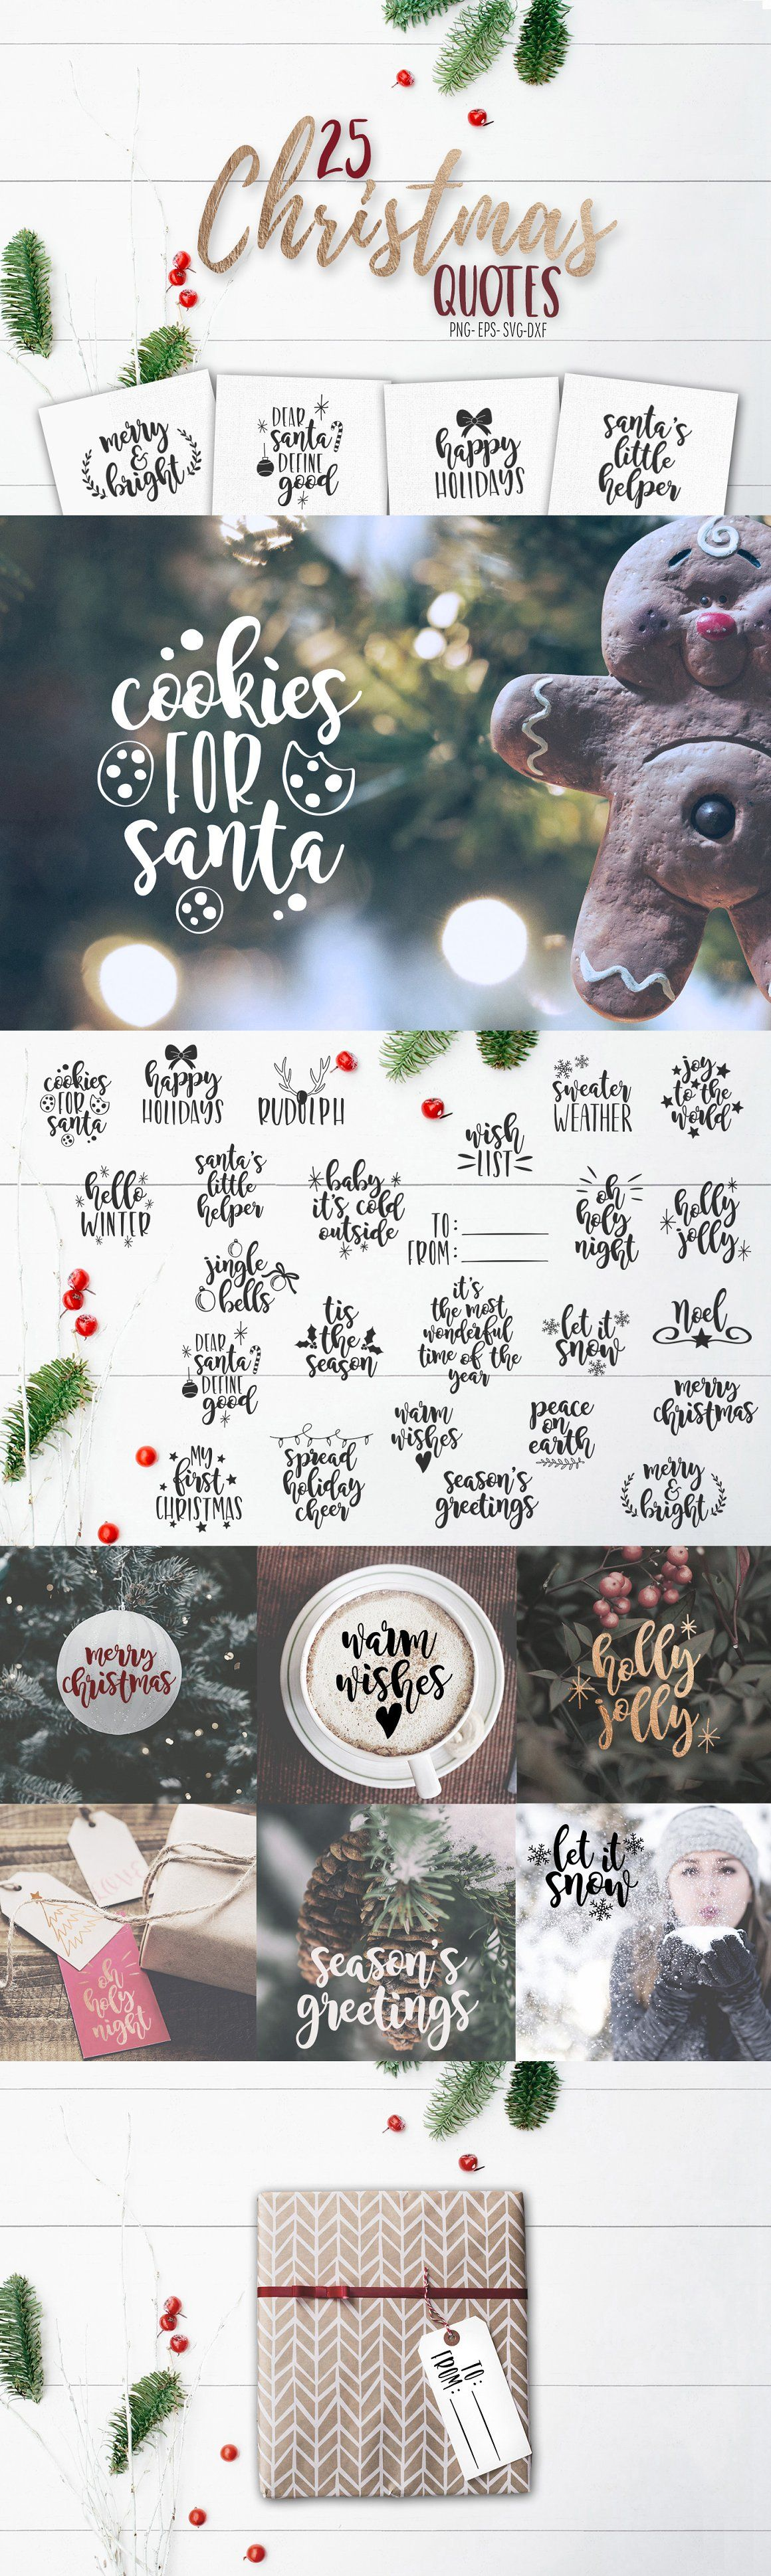 Christmas SVG Quotes And Overlays   Objects  Partner Link